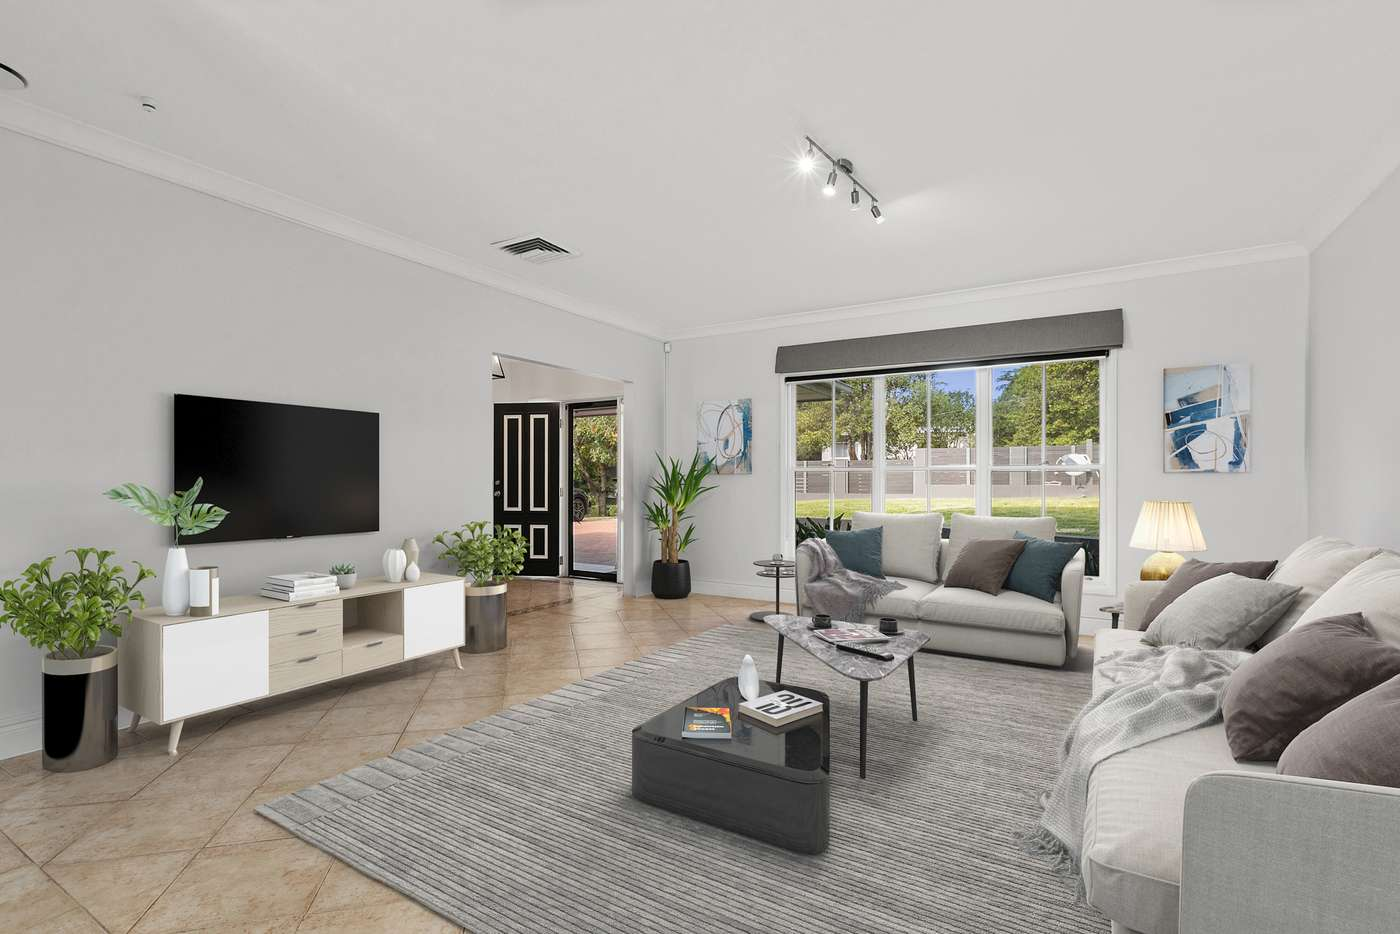 Fifth view of Homely house listing, 6B Warrimoo Ave, St Ives NSW 2075